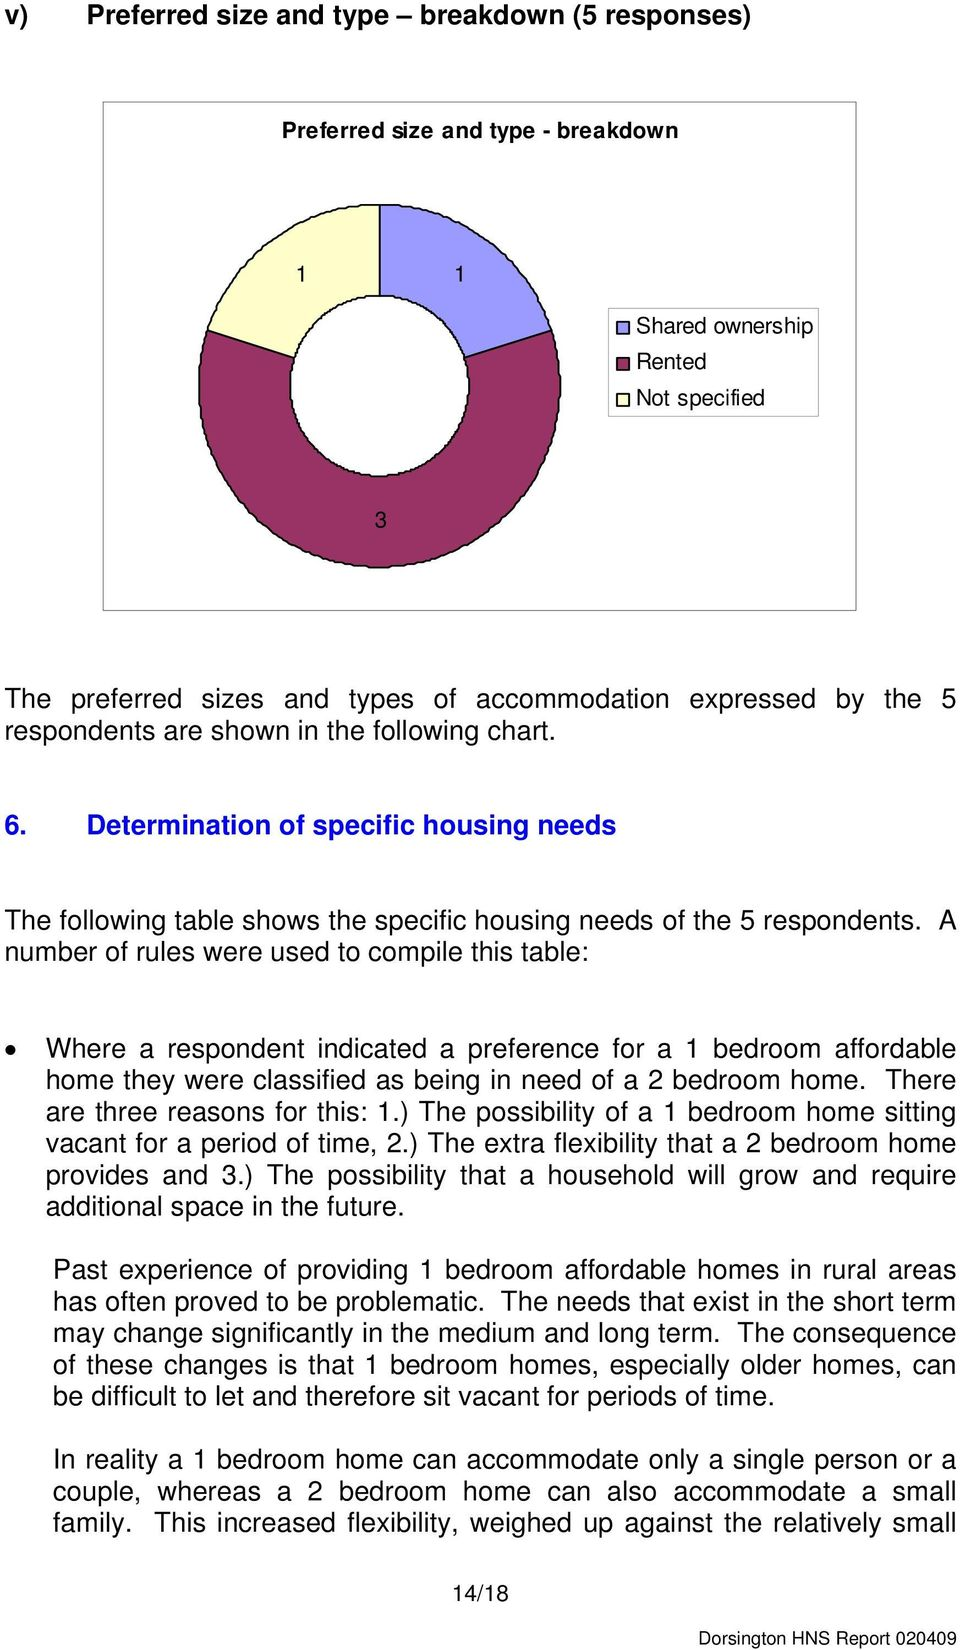 A number of rules were used to compile this table: Where a respondent indicated a preference for a bedroom affordable home they were classified as being in need of a 2 bedroom home.